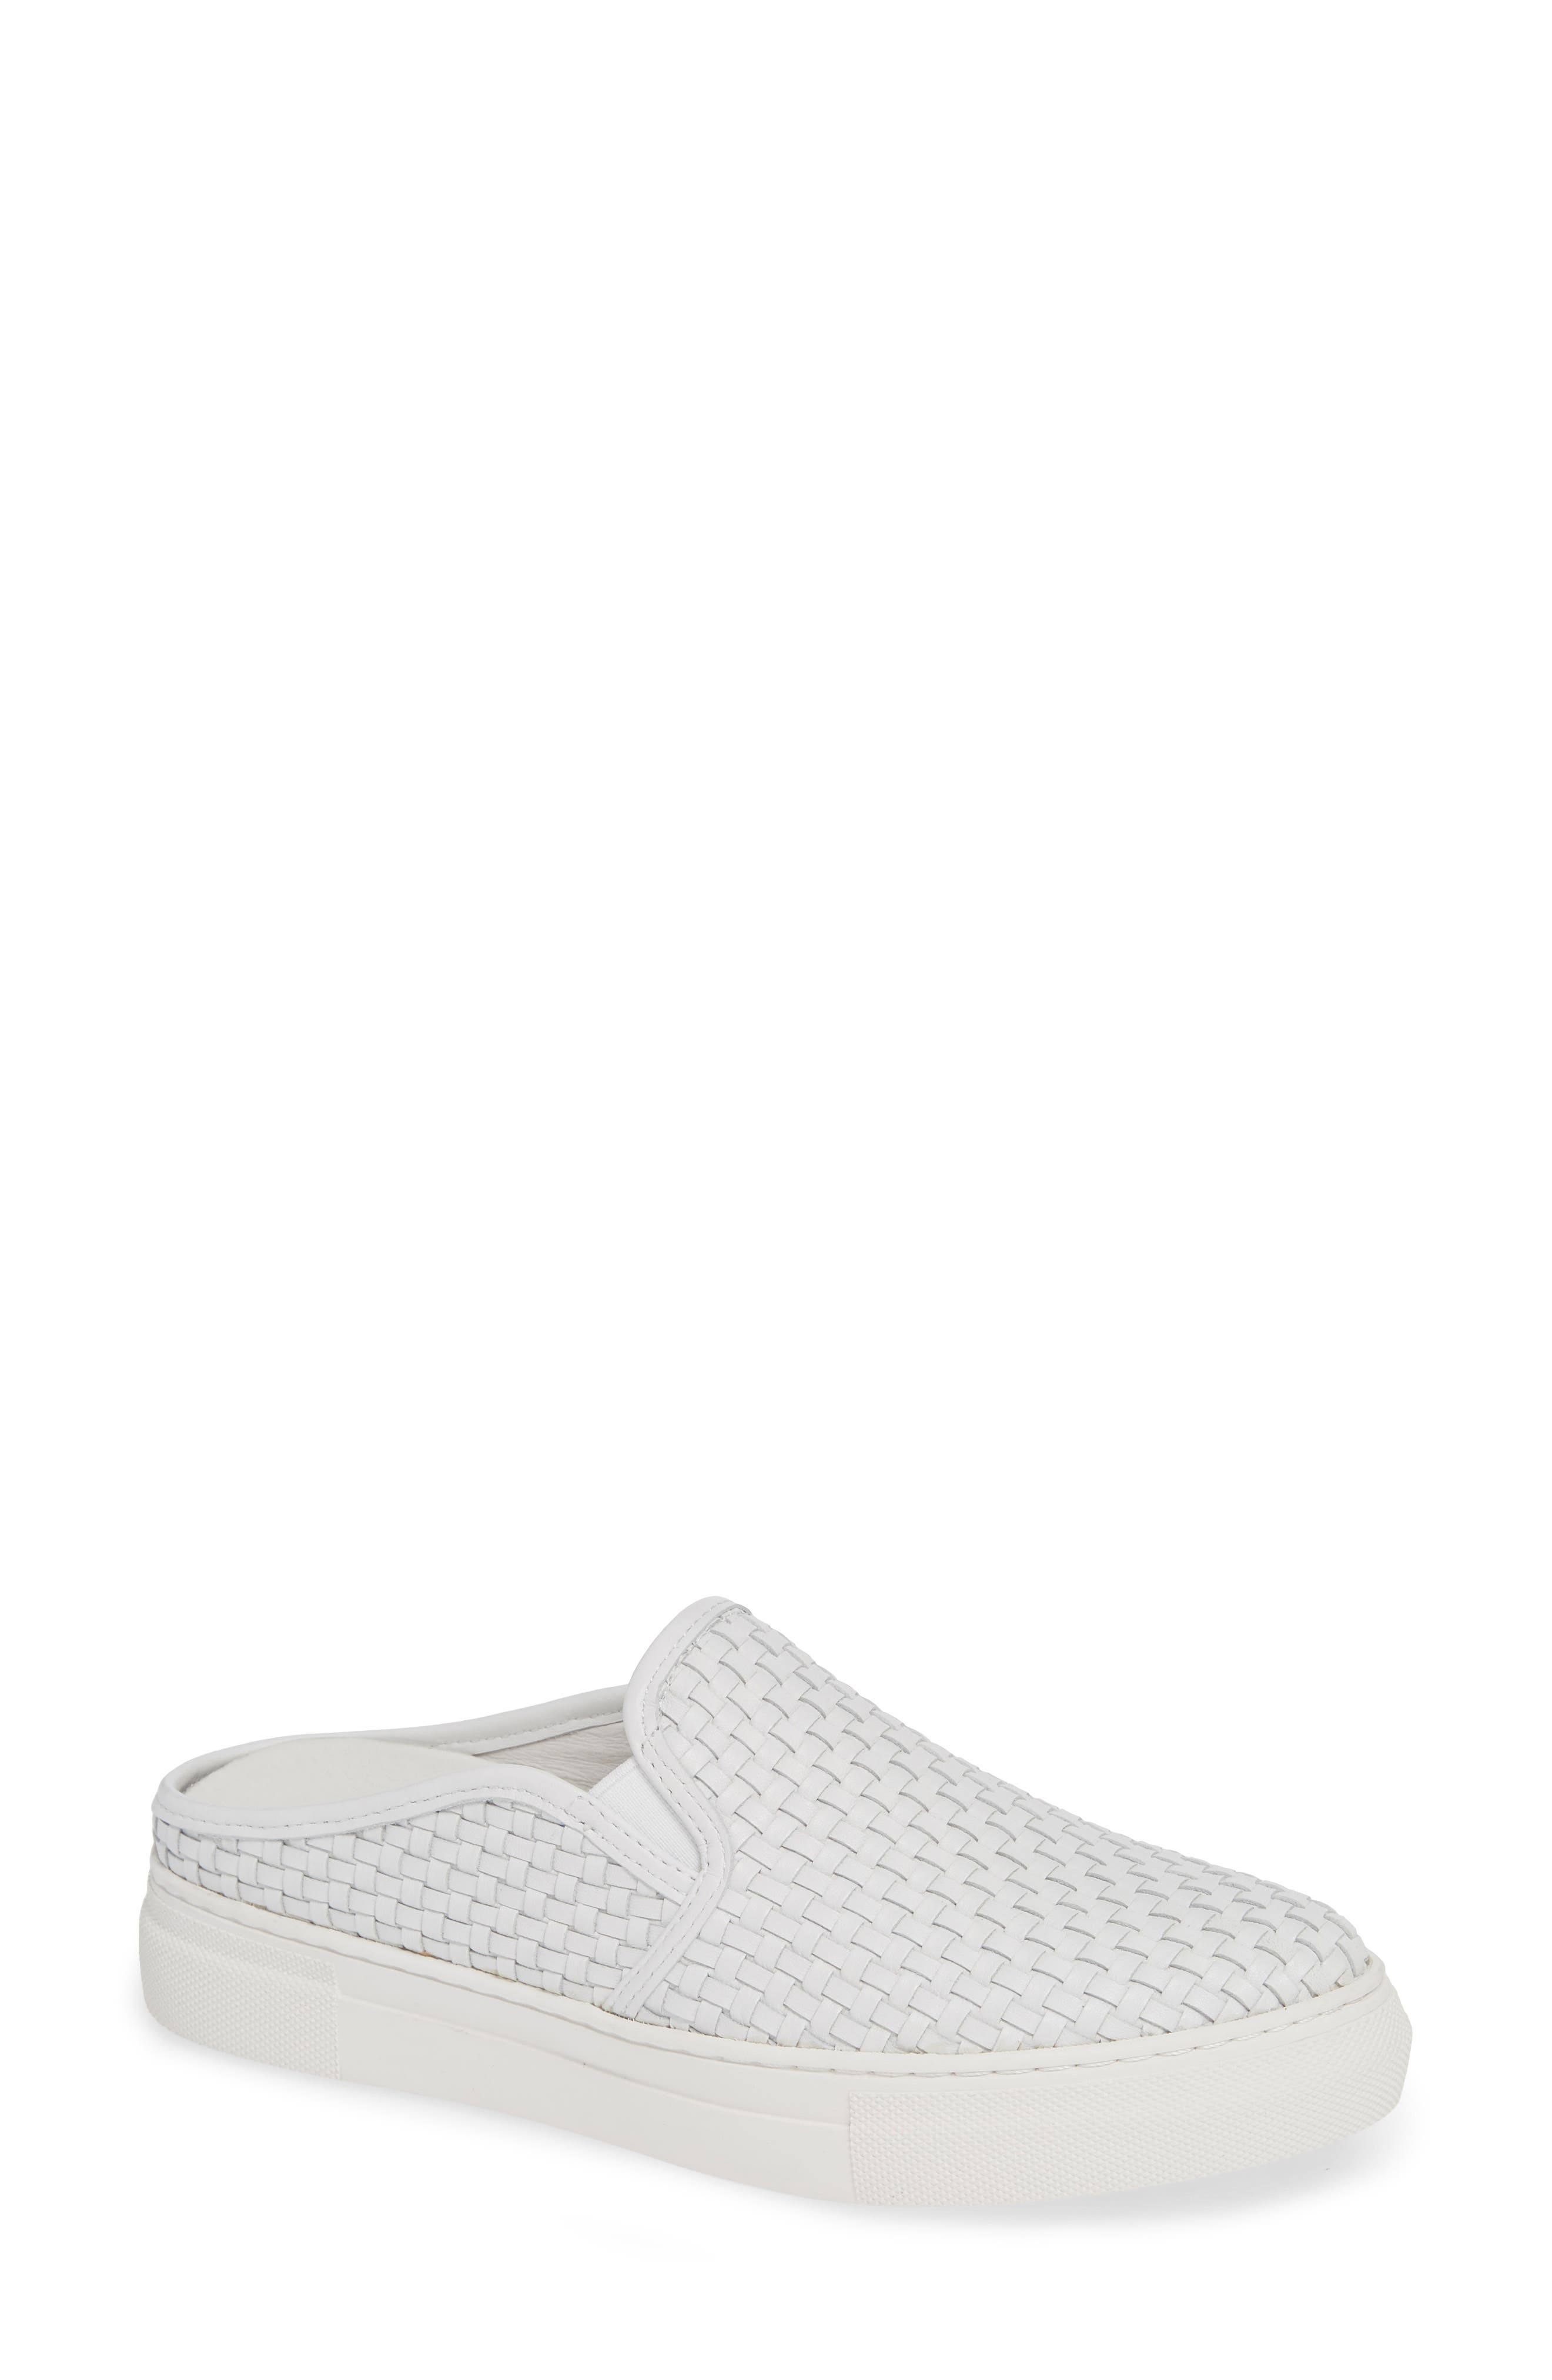 Fiona Woven Mule,                             Main thumbnail 1, color,                             WHITE LEATHER